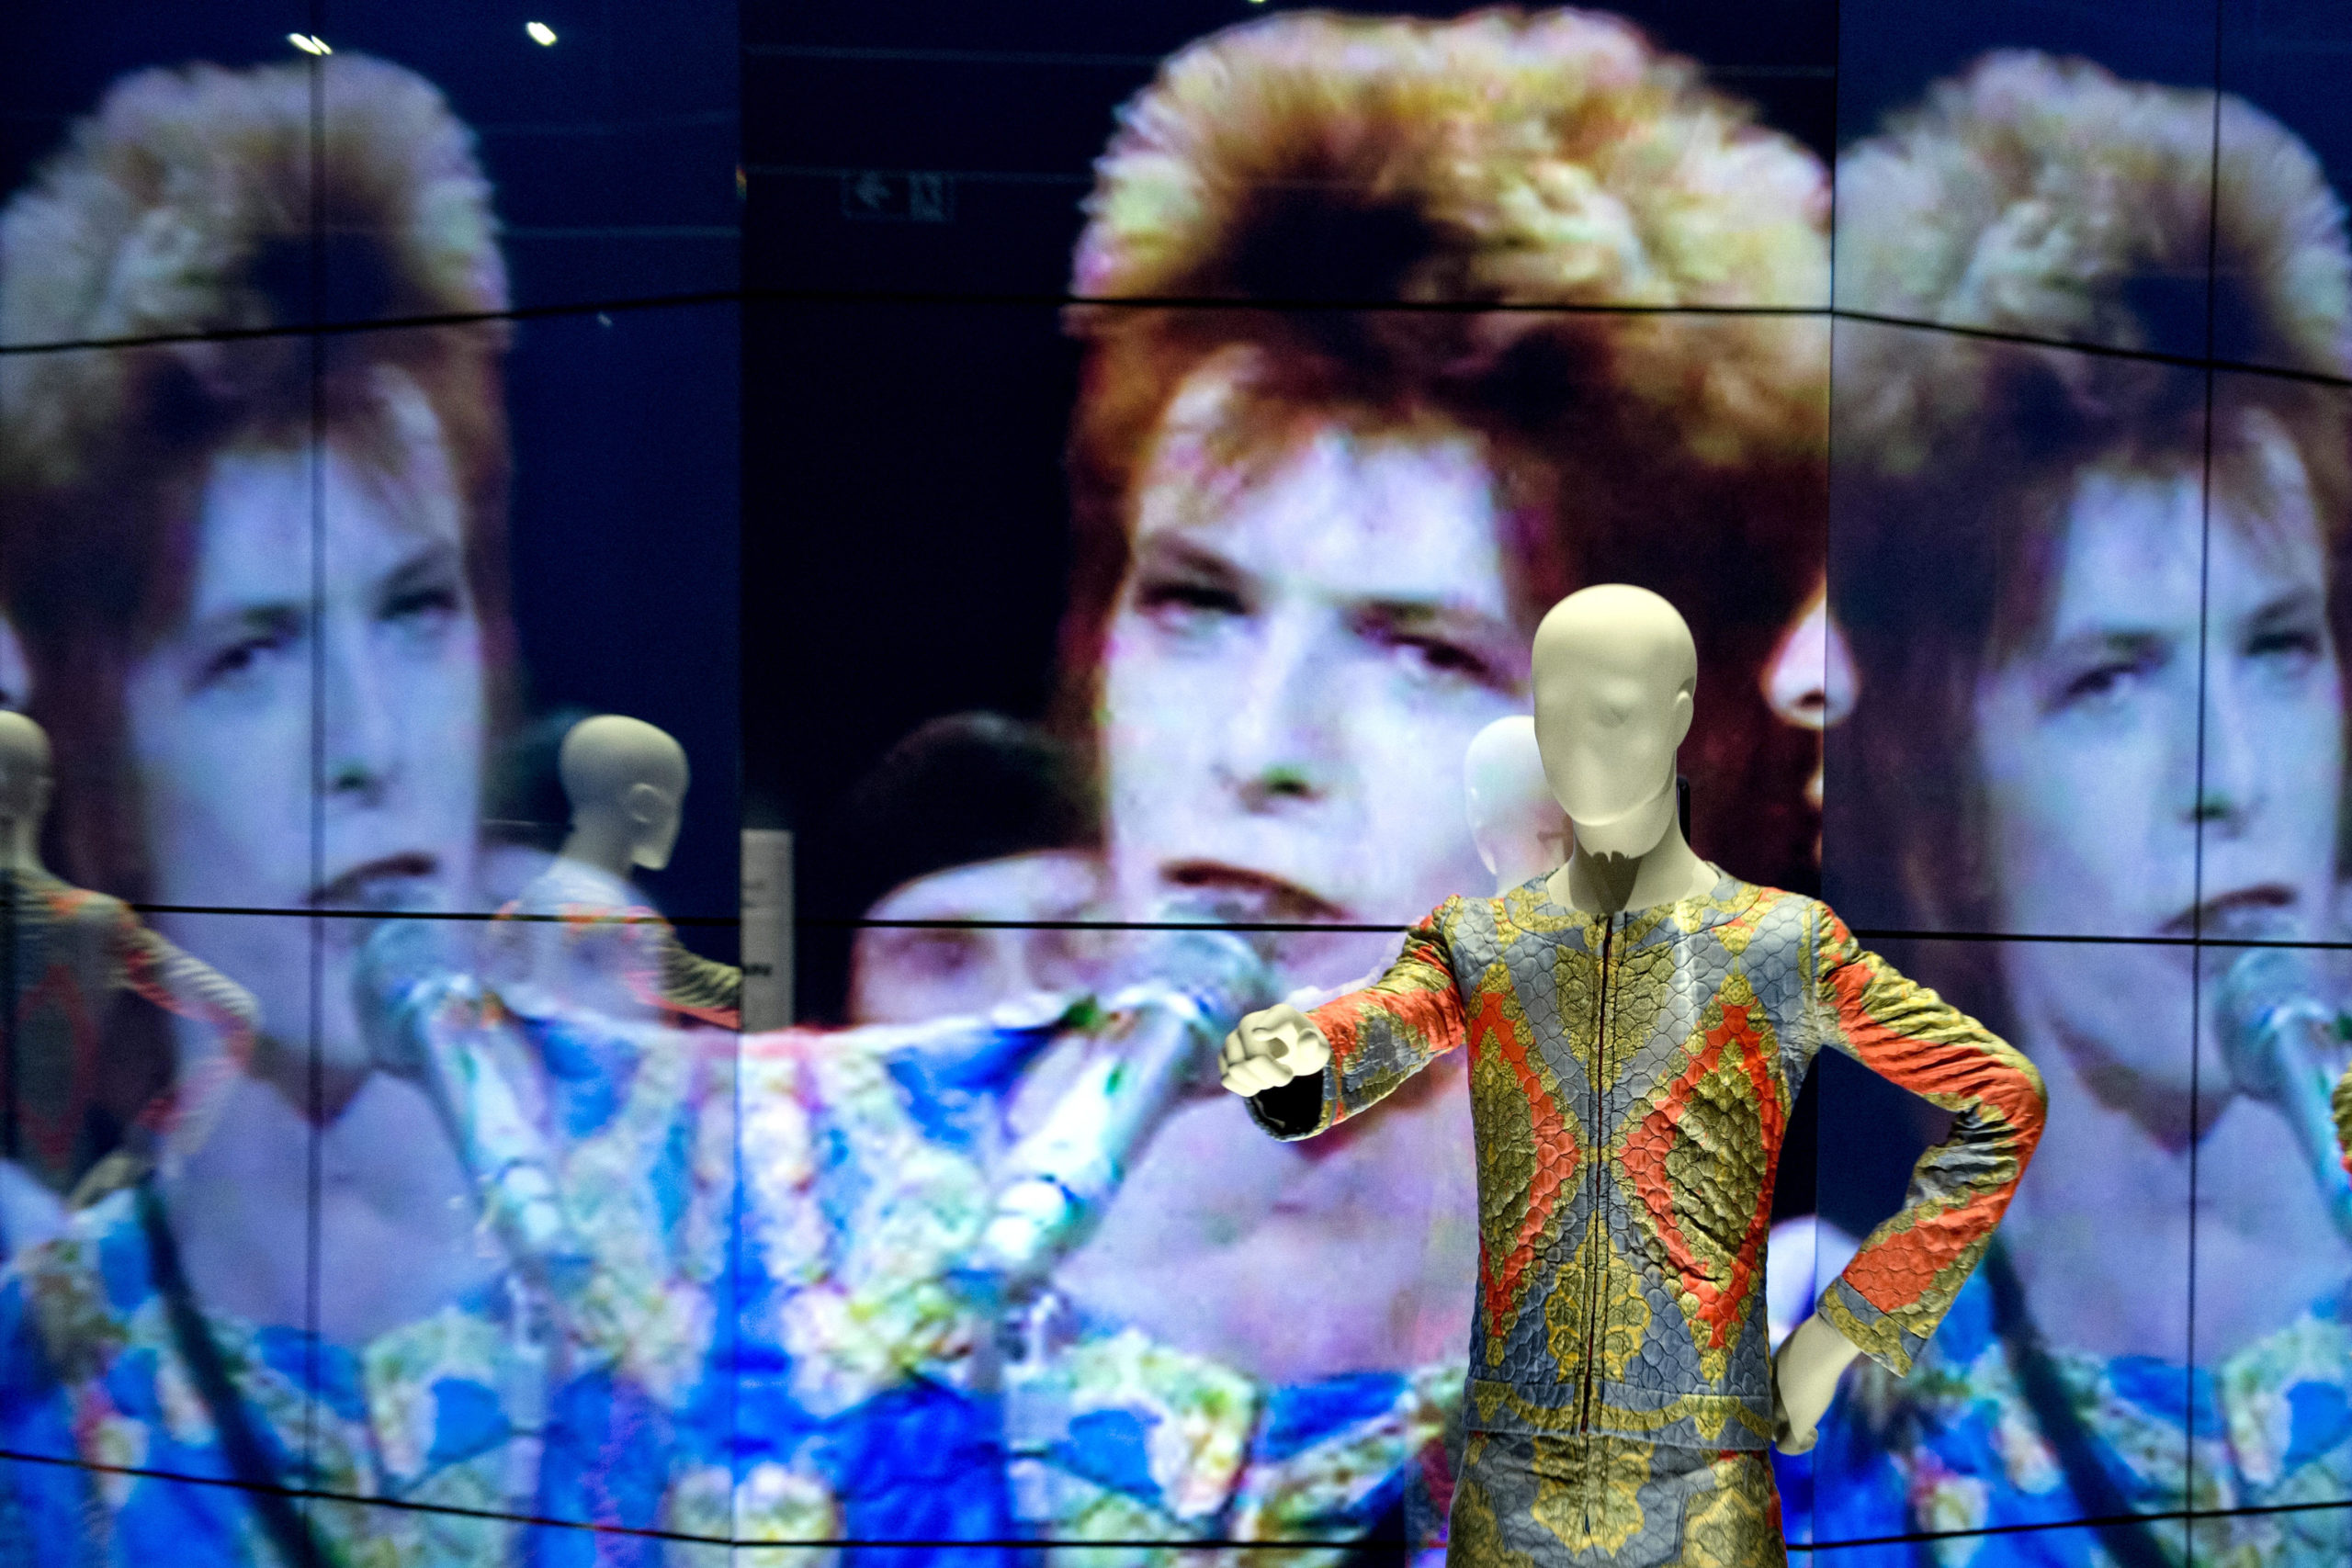 E0PEHB Berlin, Germany. 18th May, 2014. A movie, which is reflected by mirror walls, shows a performance by Bowie at BBC's Top of the Pops from 1972 at the 'David Bowie' exhibition at Martin-Gropius-Bau during a preview in Berlin, Germany, 18 May 2014. The show will run from 20 May till 10 August 2014. Photo: SOEREN STACHE/DPA (A)/dpa/Alamy Live News